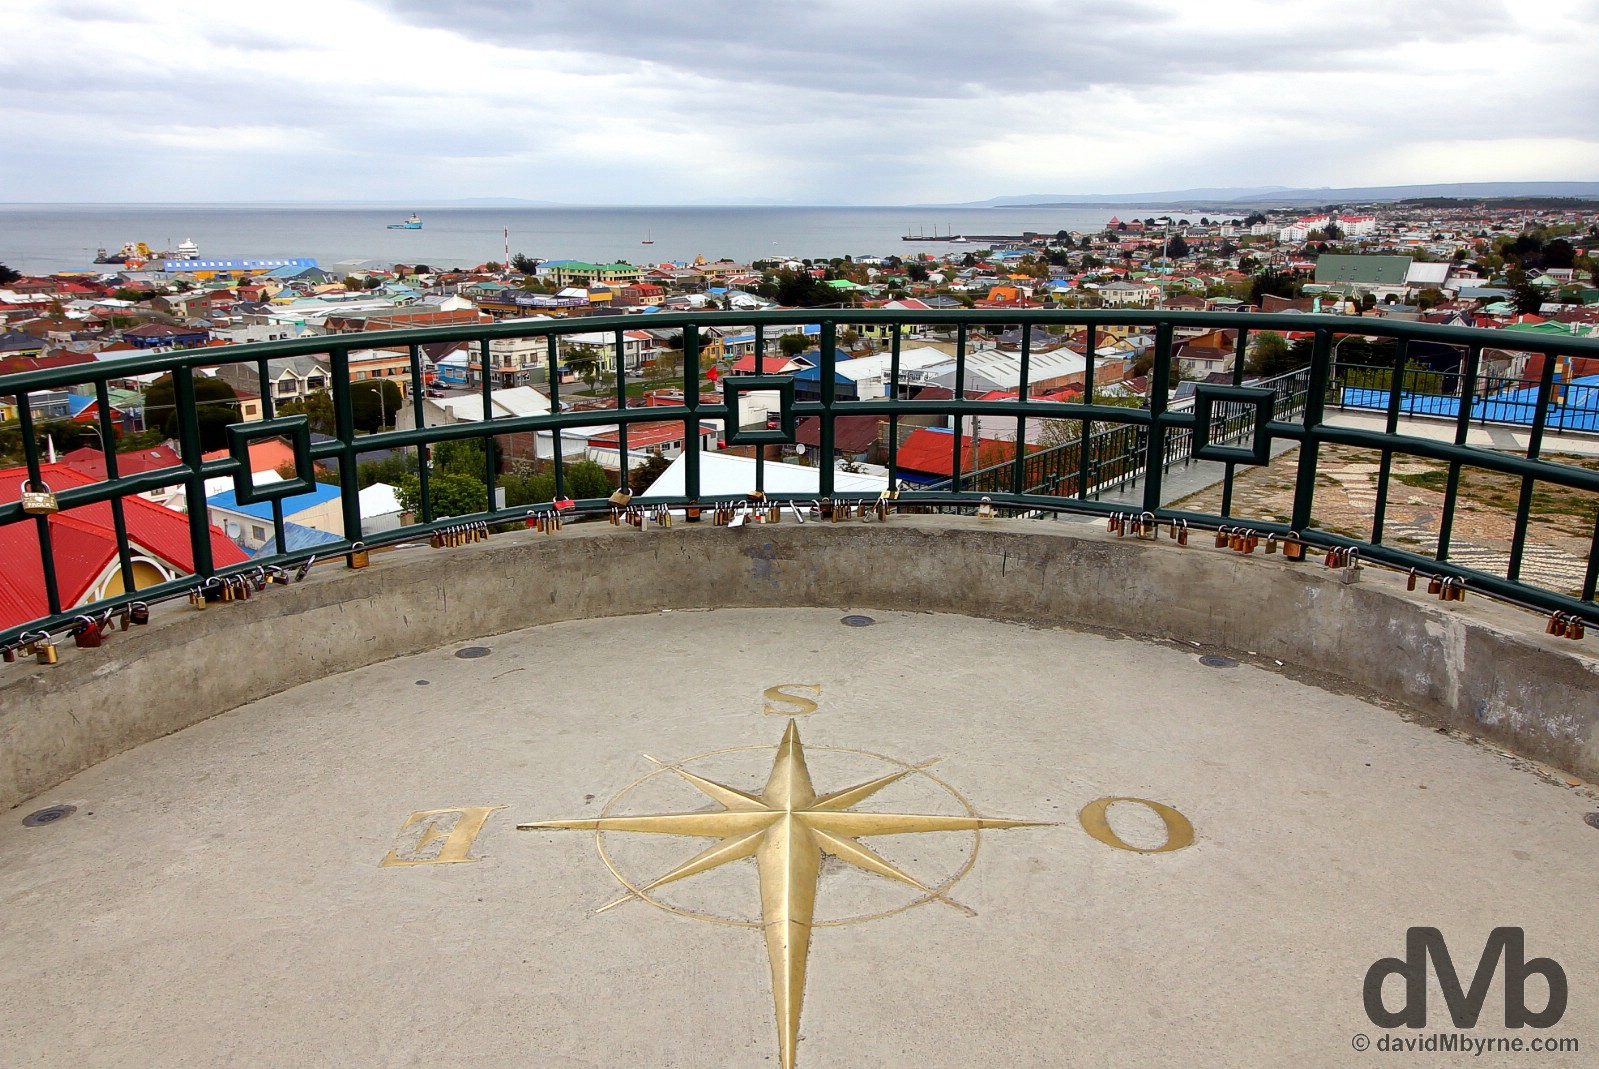 The end. Overlooking the Strait of Magellan from Mirador Cerro La Cruz in Punta Arenas, Chile. November 9, 2015.